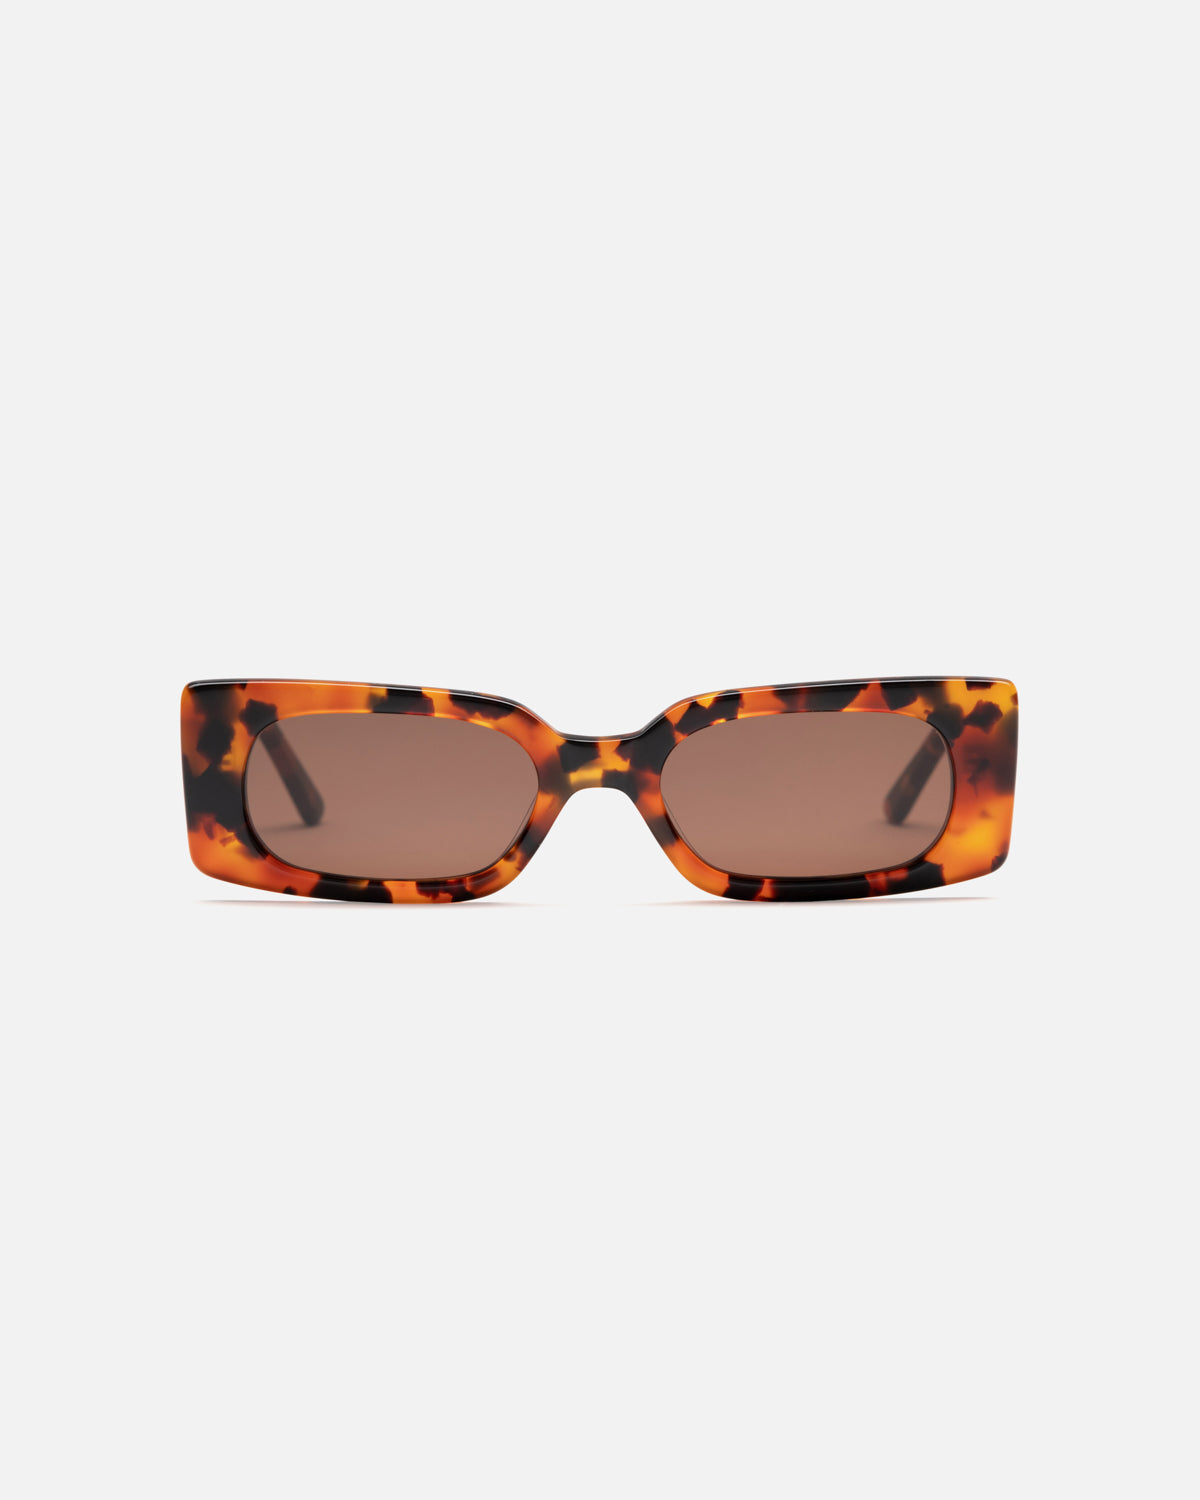 Lu Goldie Salome rectangle Sunglasses in tortoise shell acetate with brown lenses, front